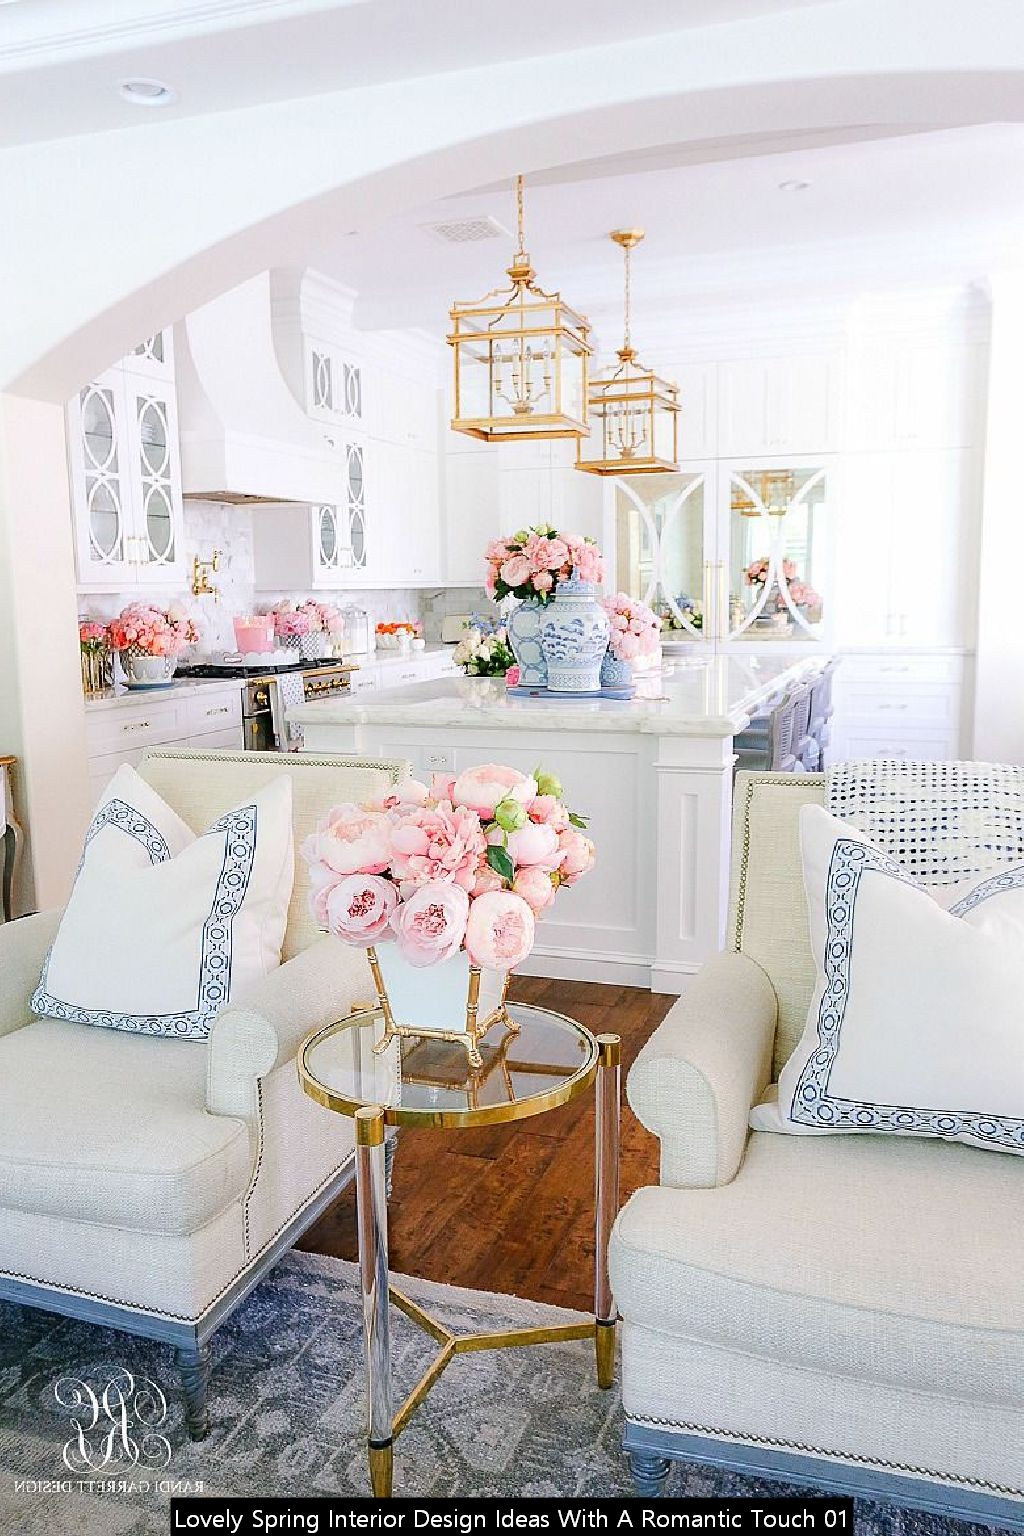 Lovely Spring Interior Design Ideas With A Romantic Touch 01